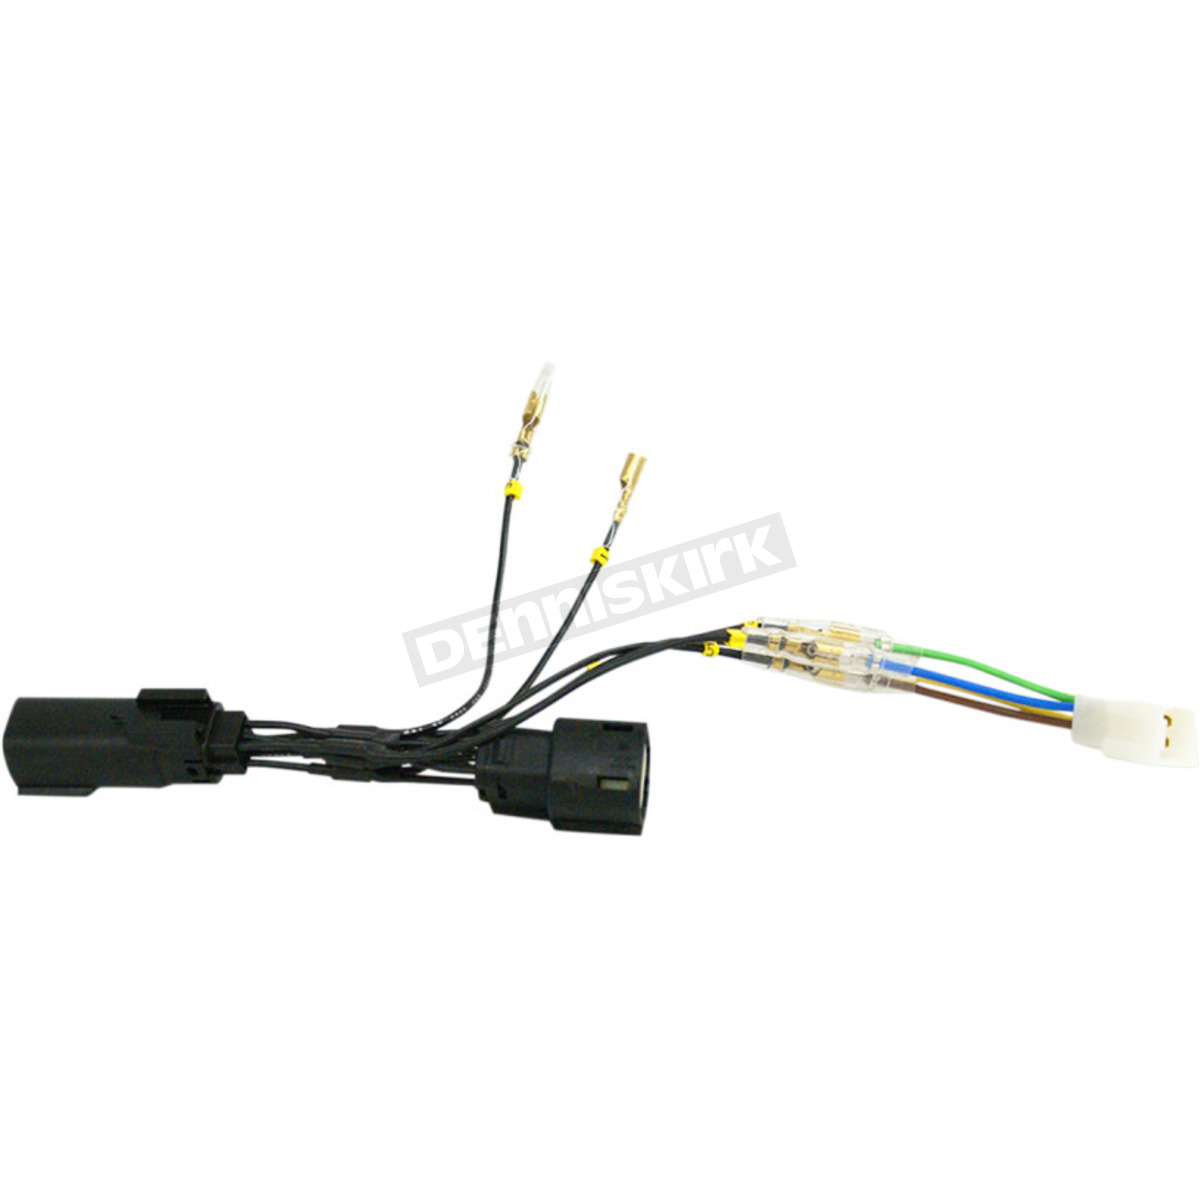 hight resolution of rivco 6 pin molex h d plug n play trailer wiring sub harness hd007 6 pin trailer harness